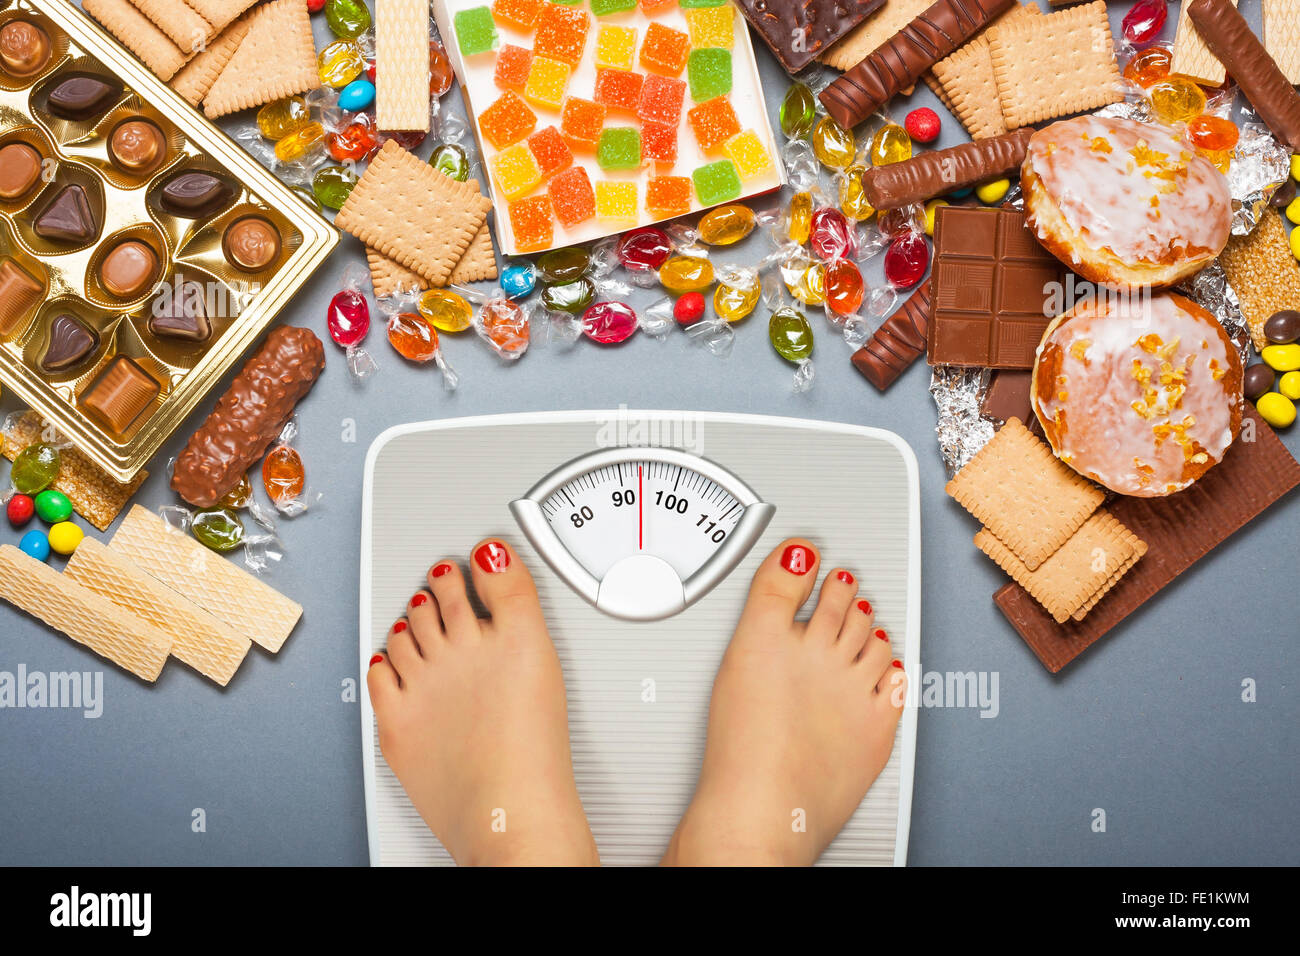 Unhealthy diet - overweight. Feet on bathroom scale and chocolate, jelly cubes, candies, chocolate bars, cookies, - Stock Image